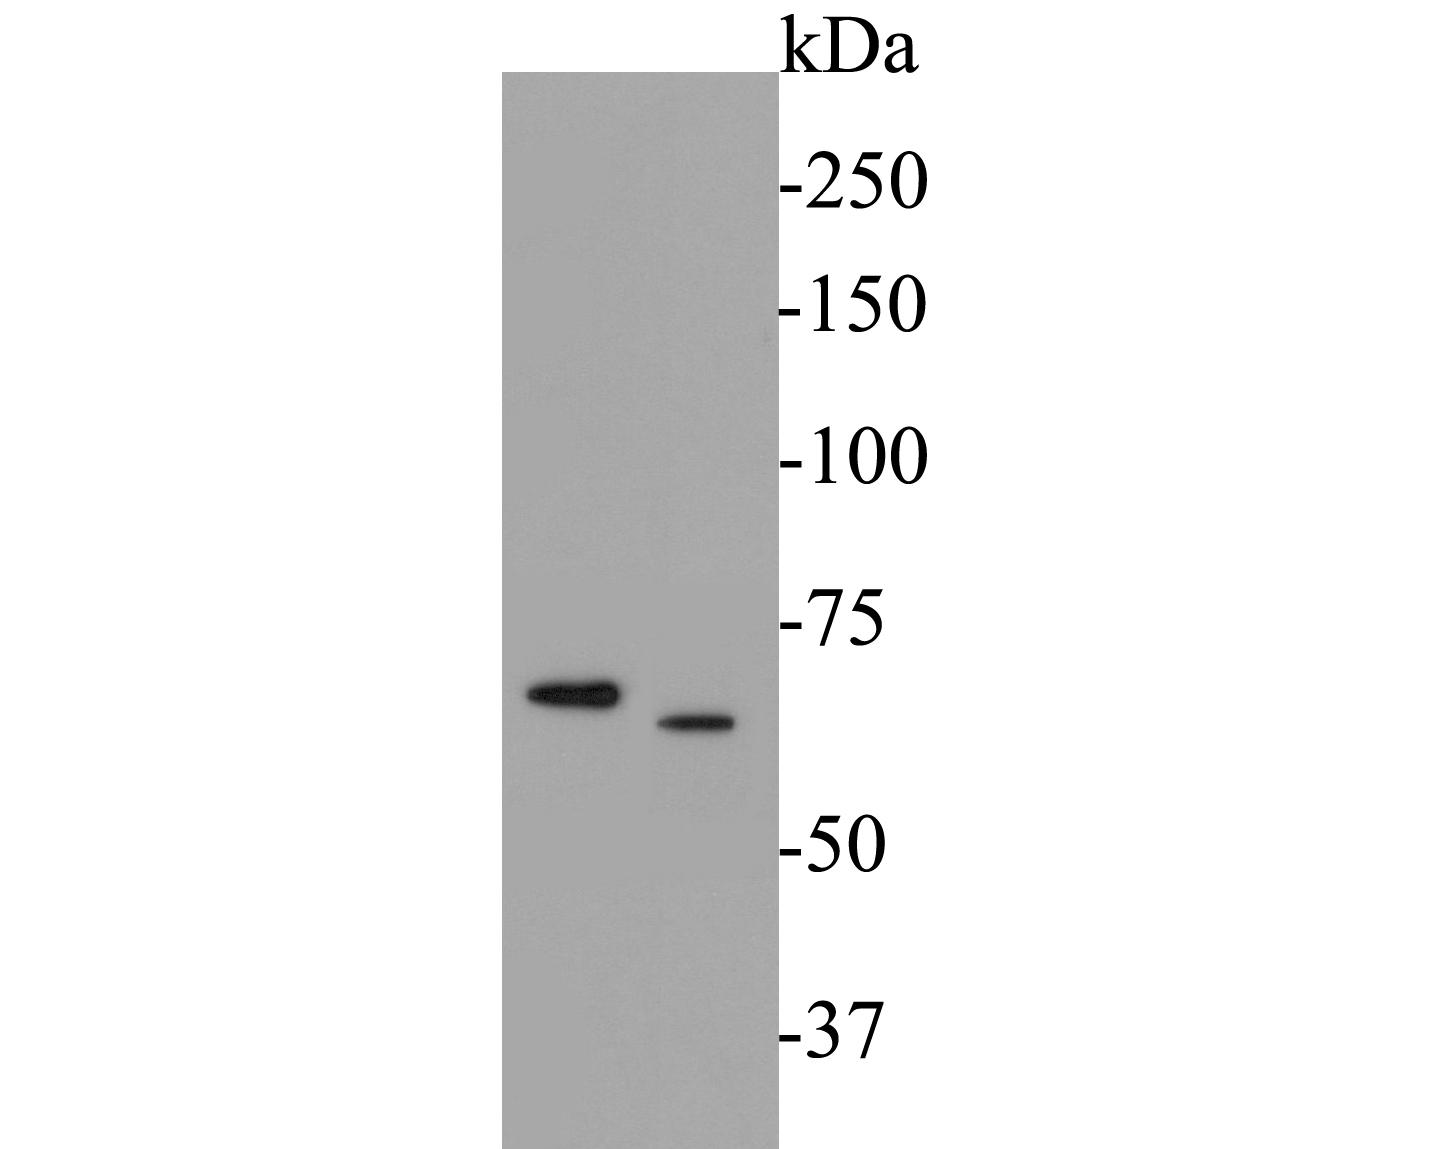 Western blot analysis of USP21 on different lysates. Proteins were transferred to a PVDF membrane and blocked with 5% BSA in PBS for 1 hour at room temperature. The primary antibody (EM1901-37, 1/500) was used in 5% BSA at room temperature for 2 hours. Goat Anti-Mouse IgG - HRP Secondary Antibody (HA1006) at 1:5,000 dilution was used for 1 hour at room temperature.<br /> Positive control: <br /> Lane 1: SH-SY5Y cell lysates<br /> Lane 2: K562 cell lysates